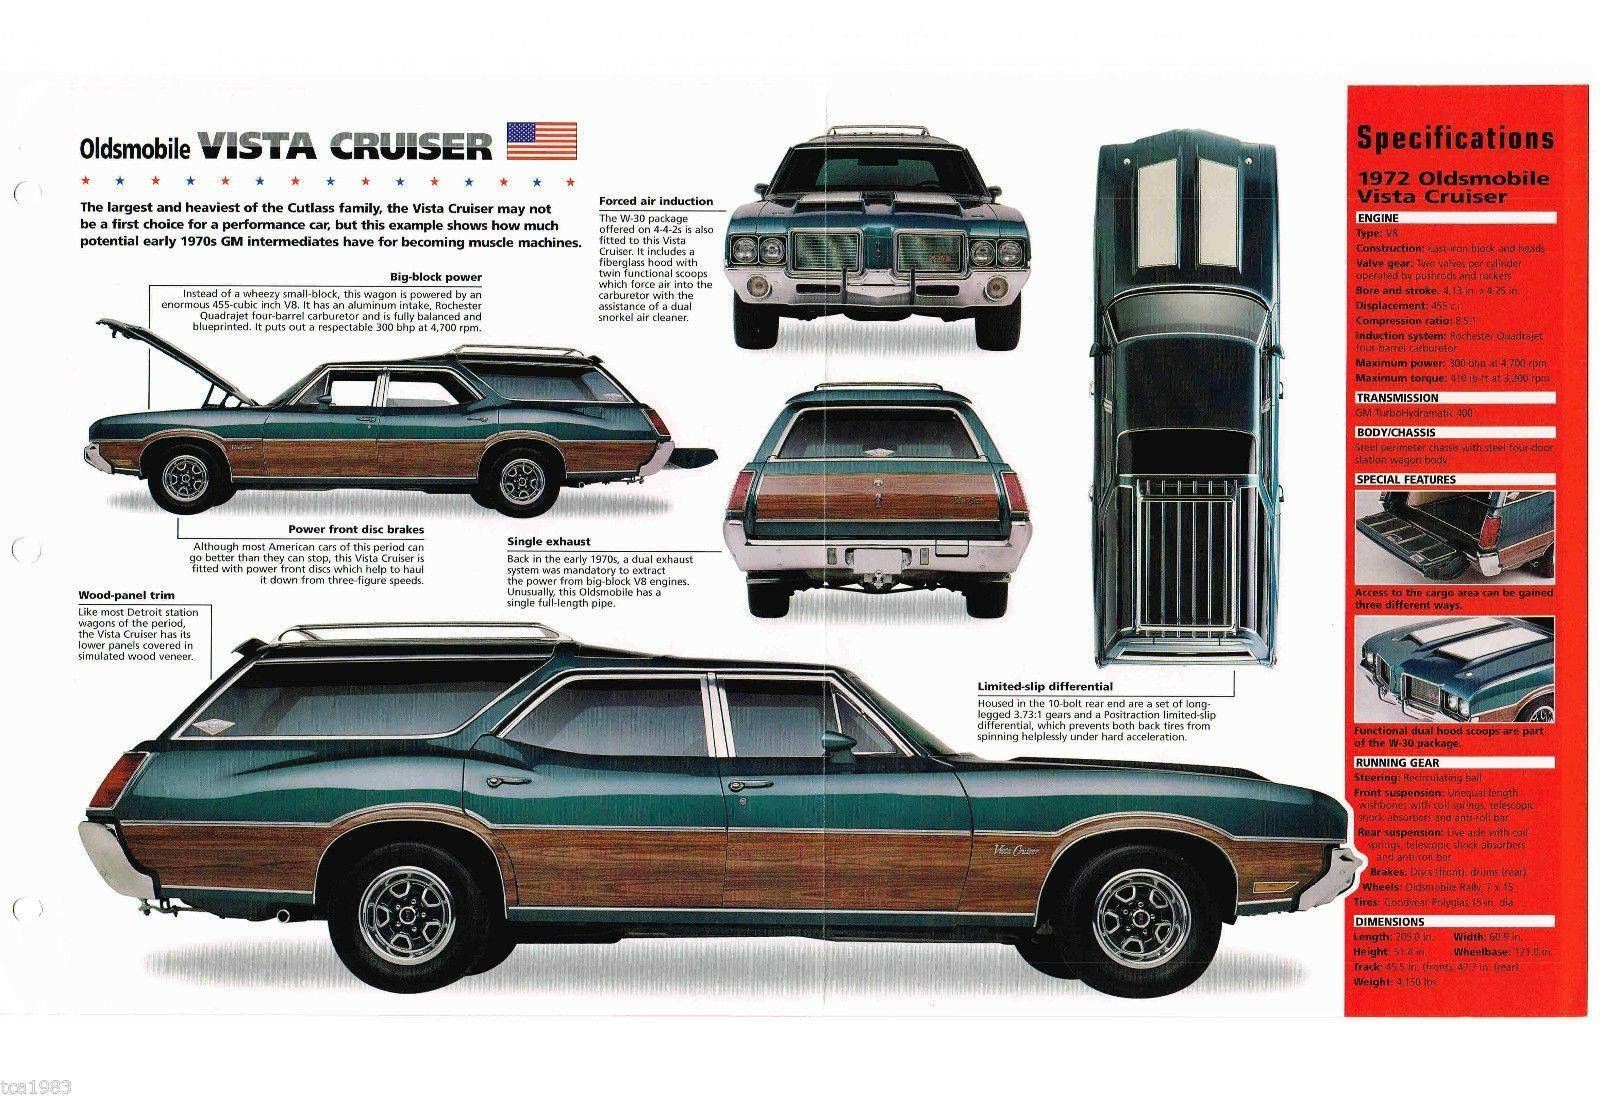 Pin By Hf On Cars Station Wagon Oldsmobile Vista Cruiser